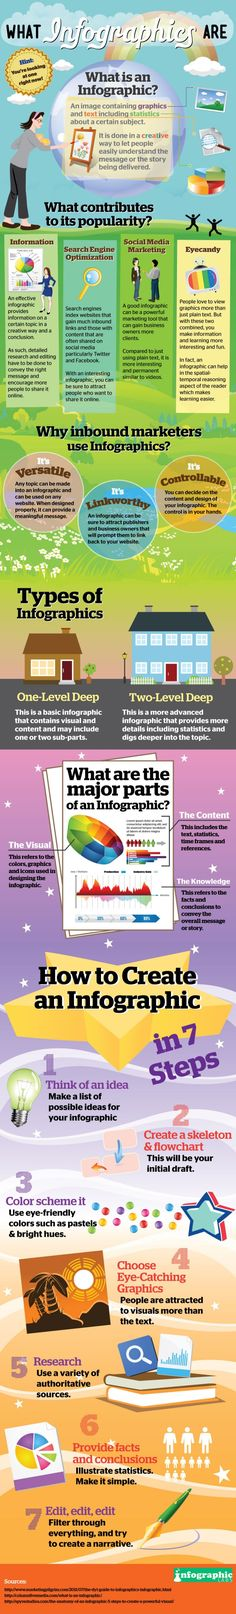 All about Infographics and why Marketers use them. @Rod Green @Tim Richardson